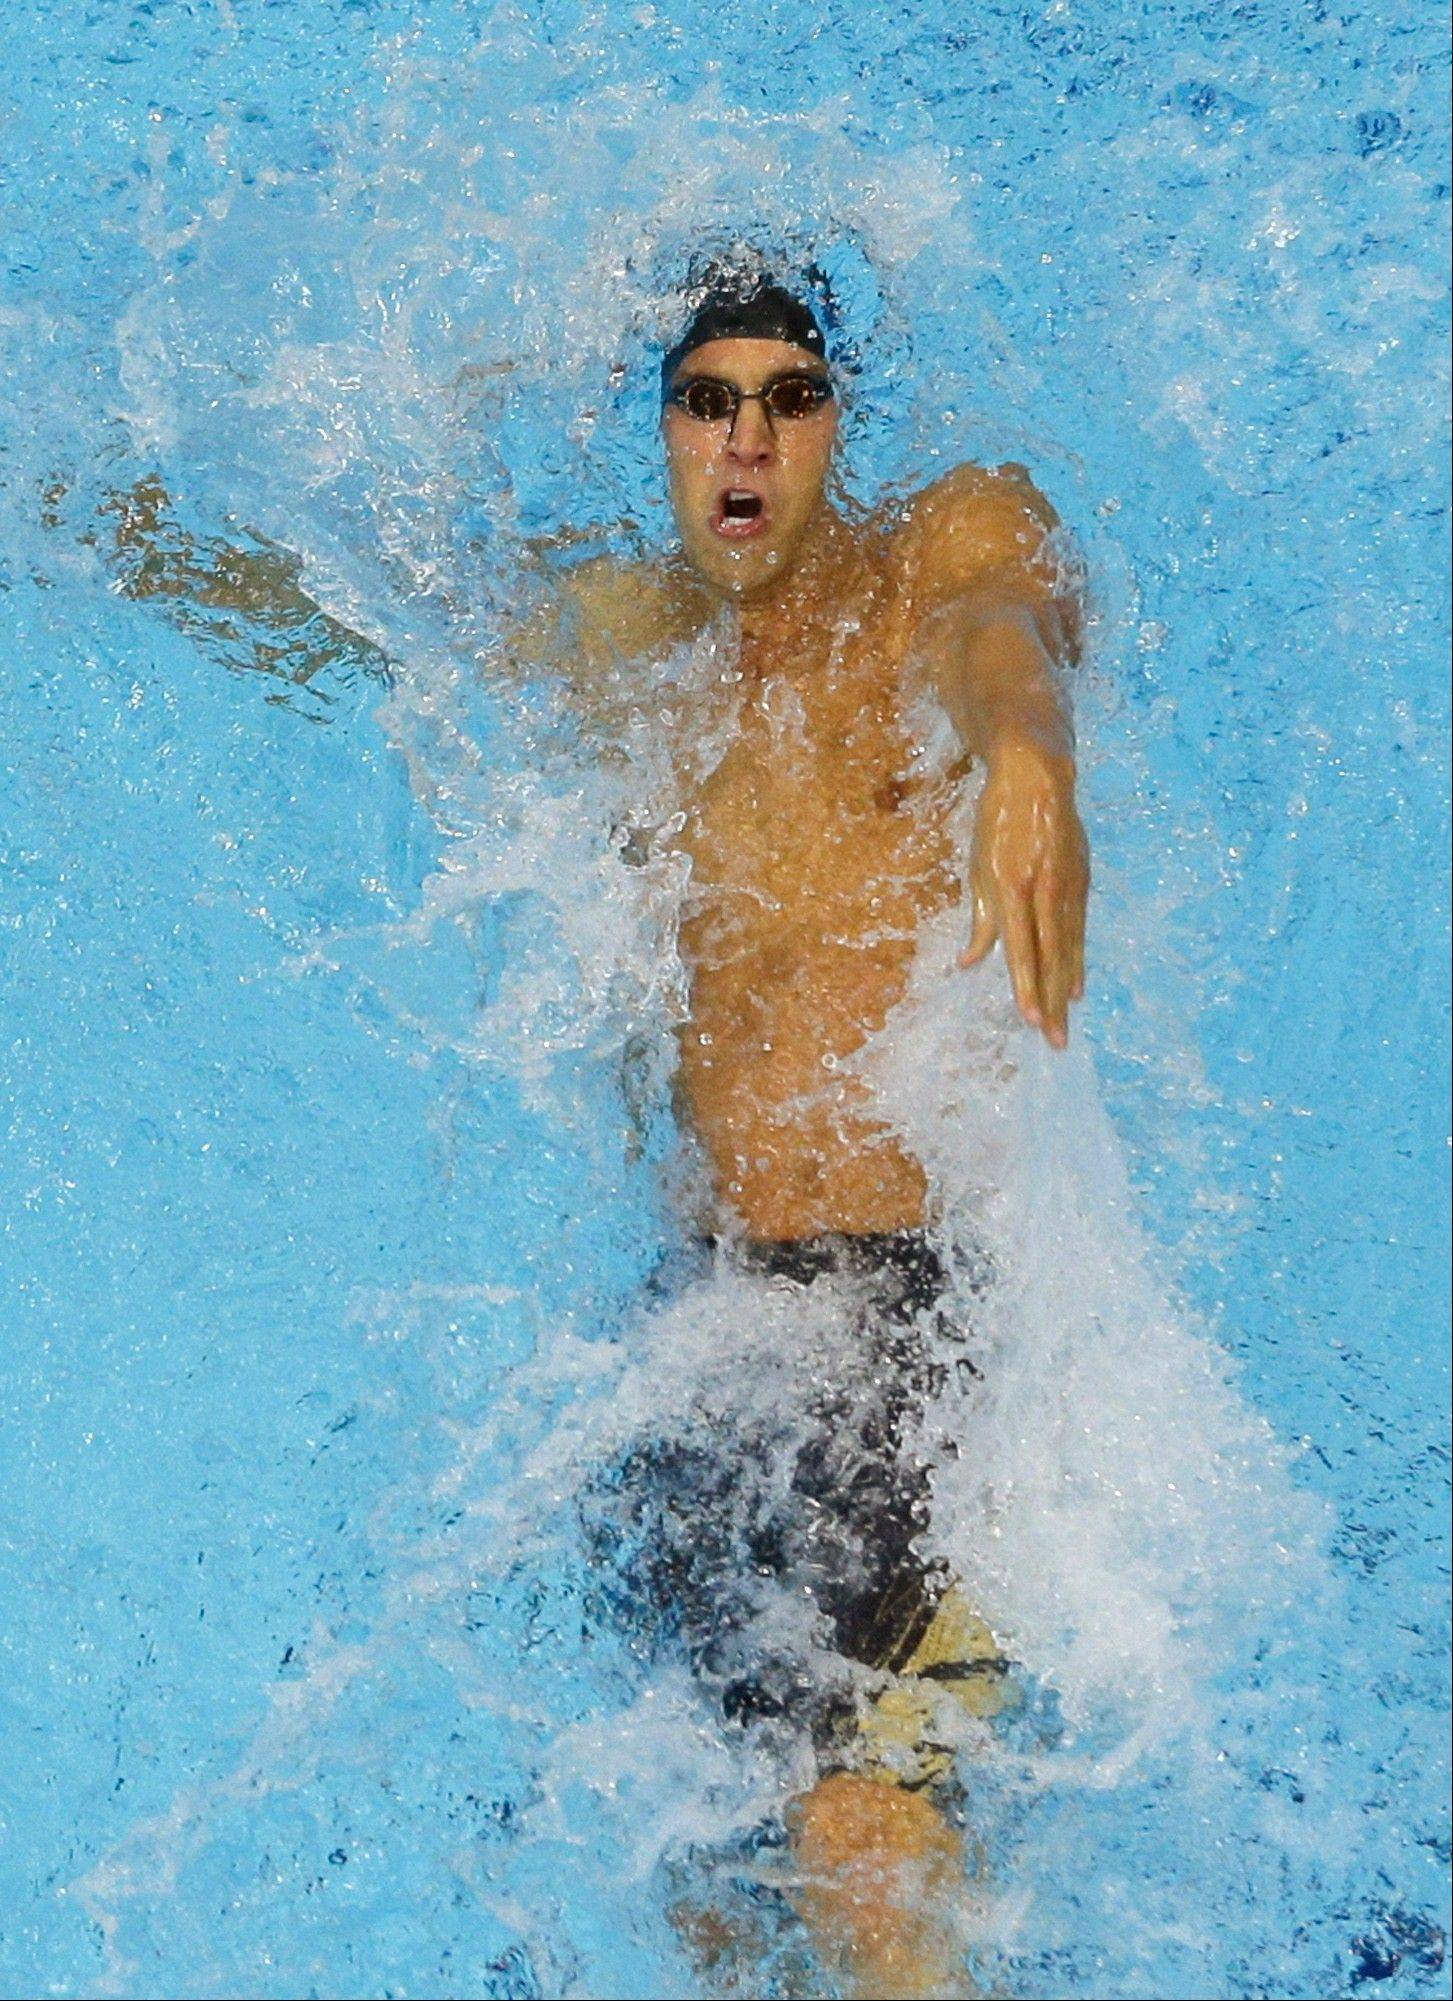 United States' Matthew Grevers competes in the men's 100-meter backstroke swimming final at the Aquatics Centre in the Olympic Park during the 2012 Summer Olympics in London, Monday, July 30, 2012.